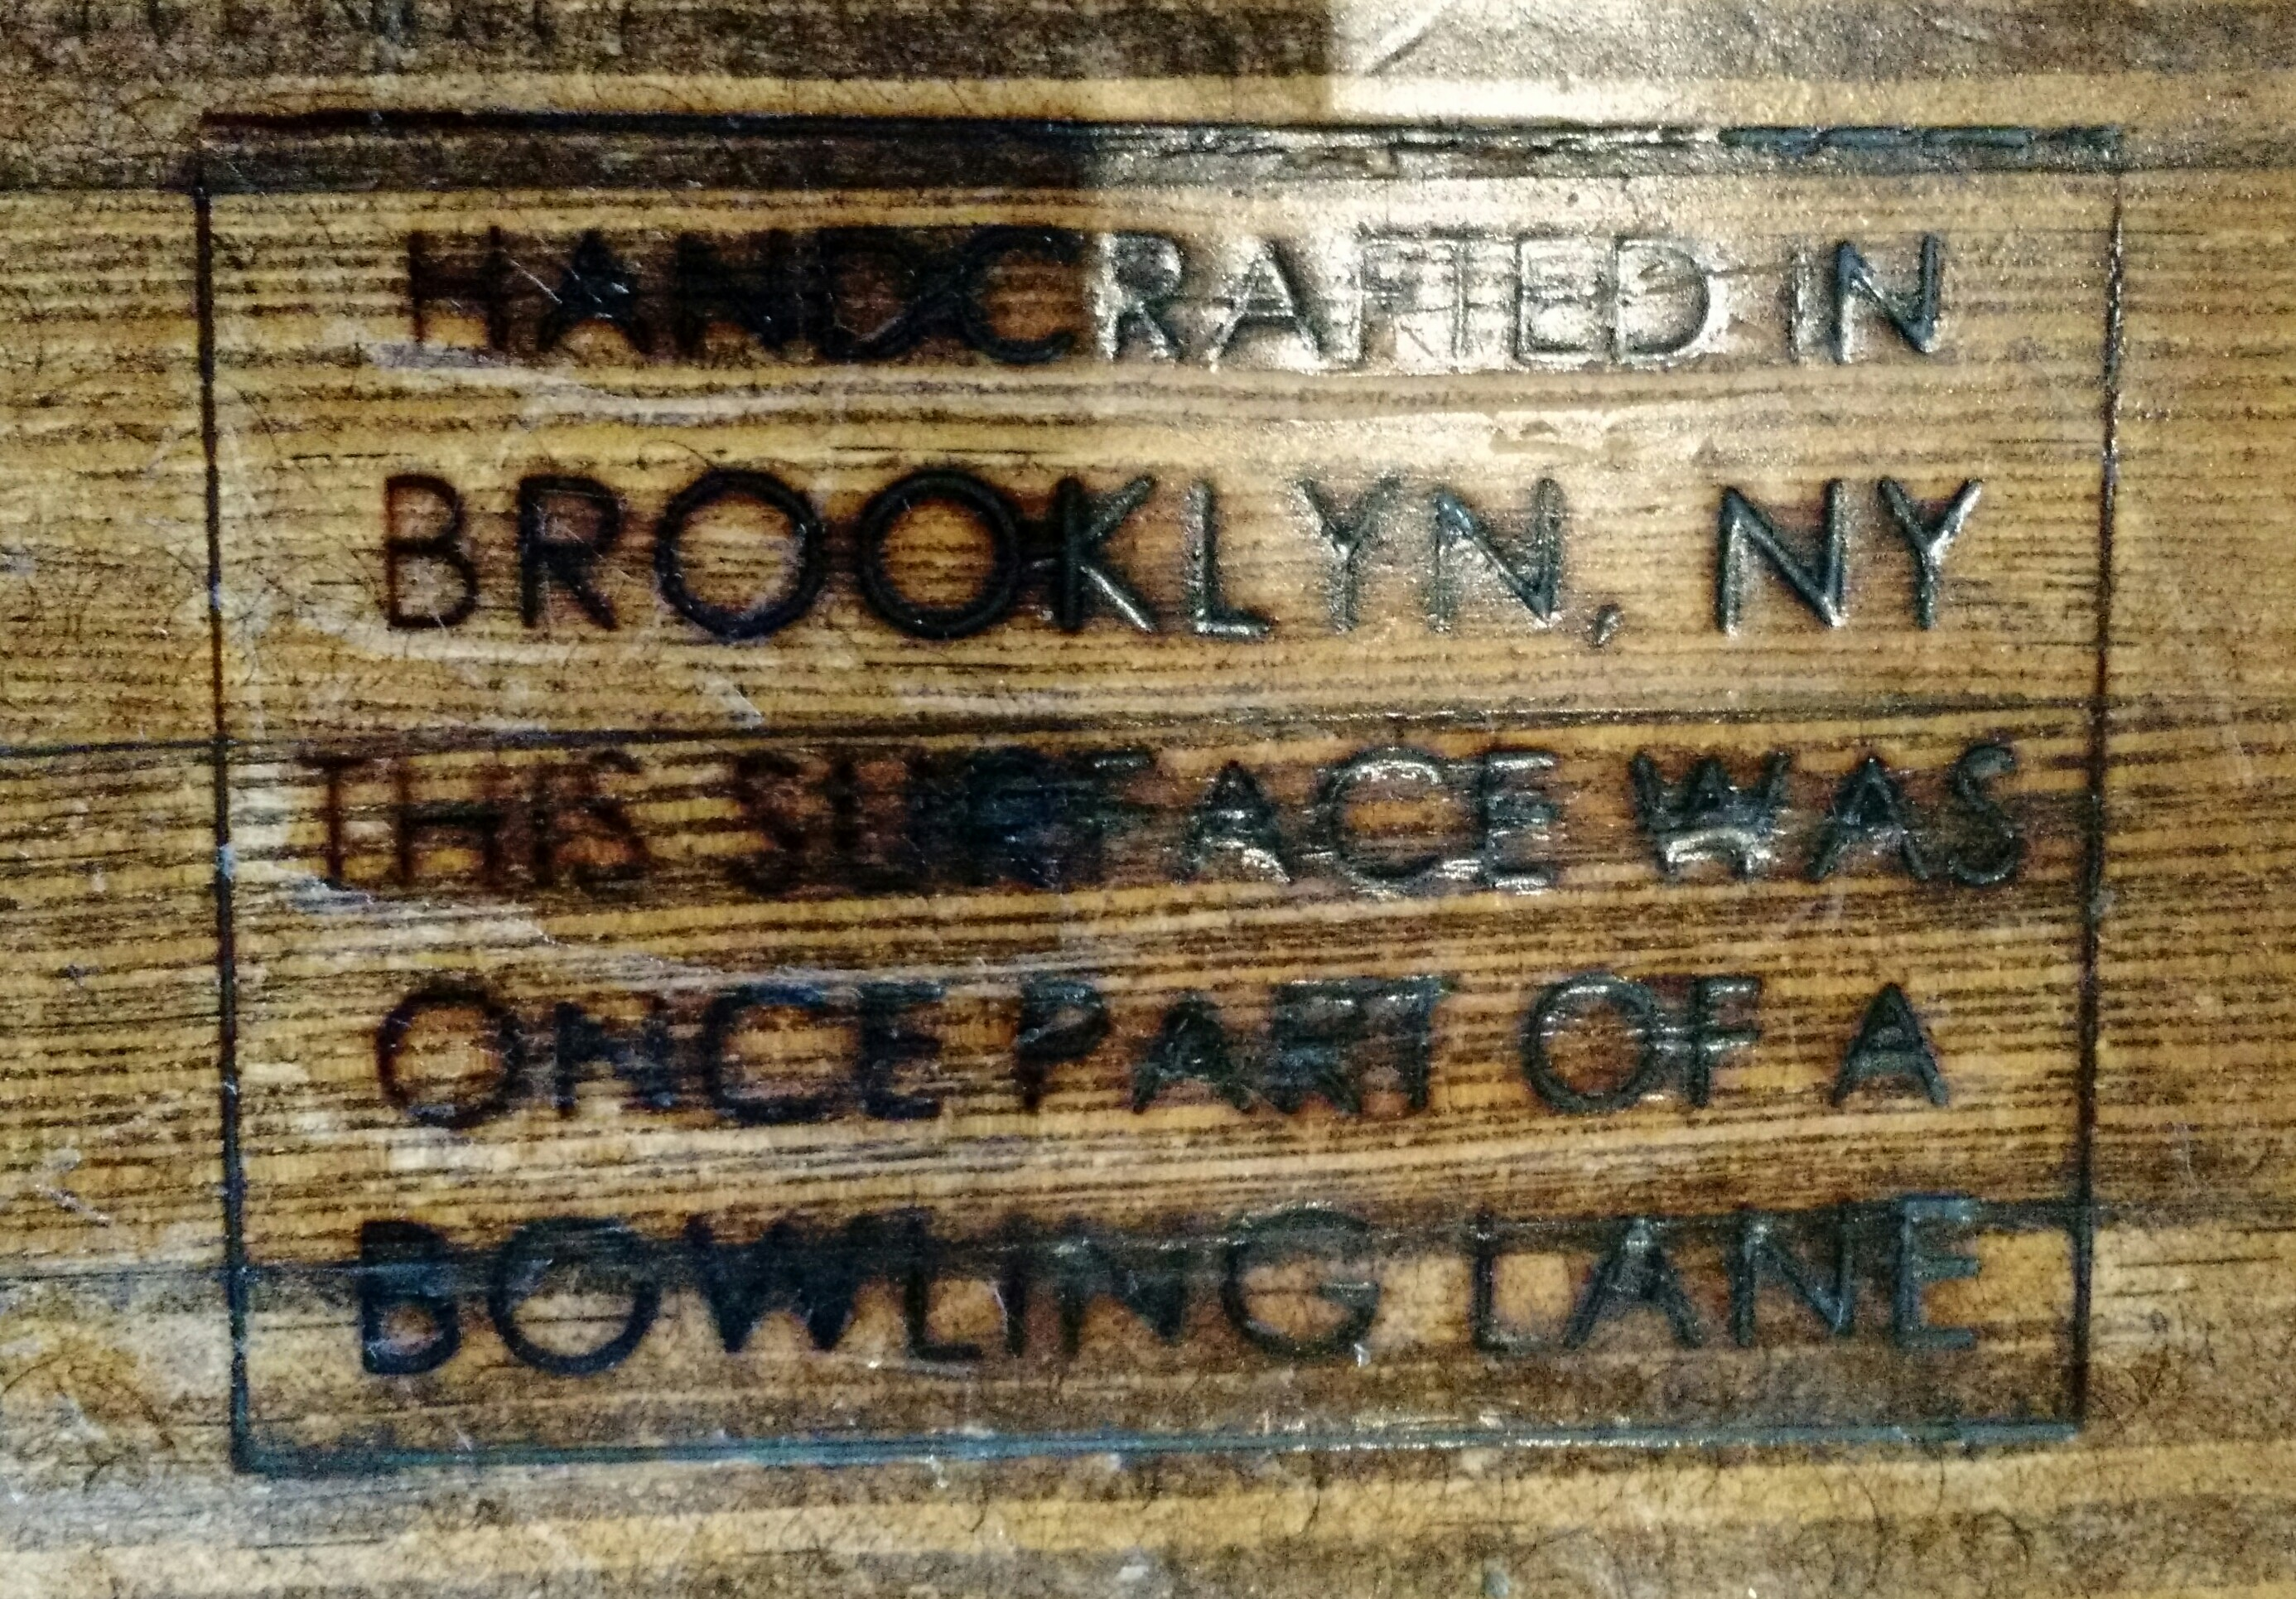 Inscription on Shake Shack table